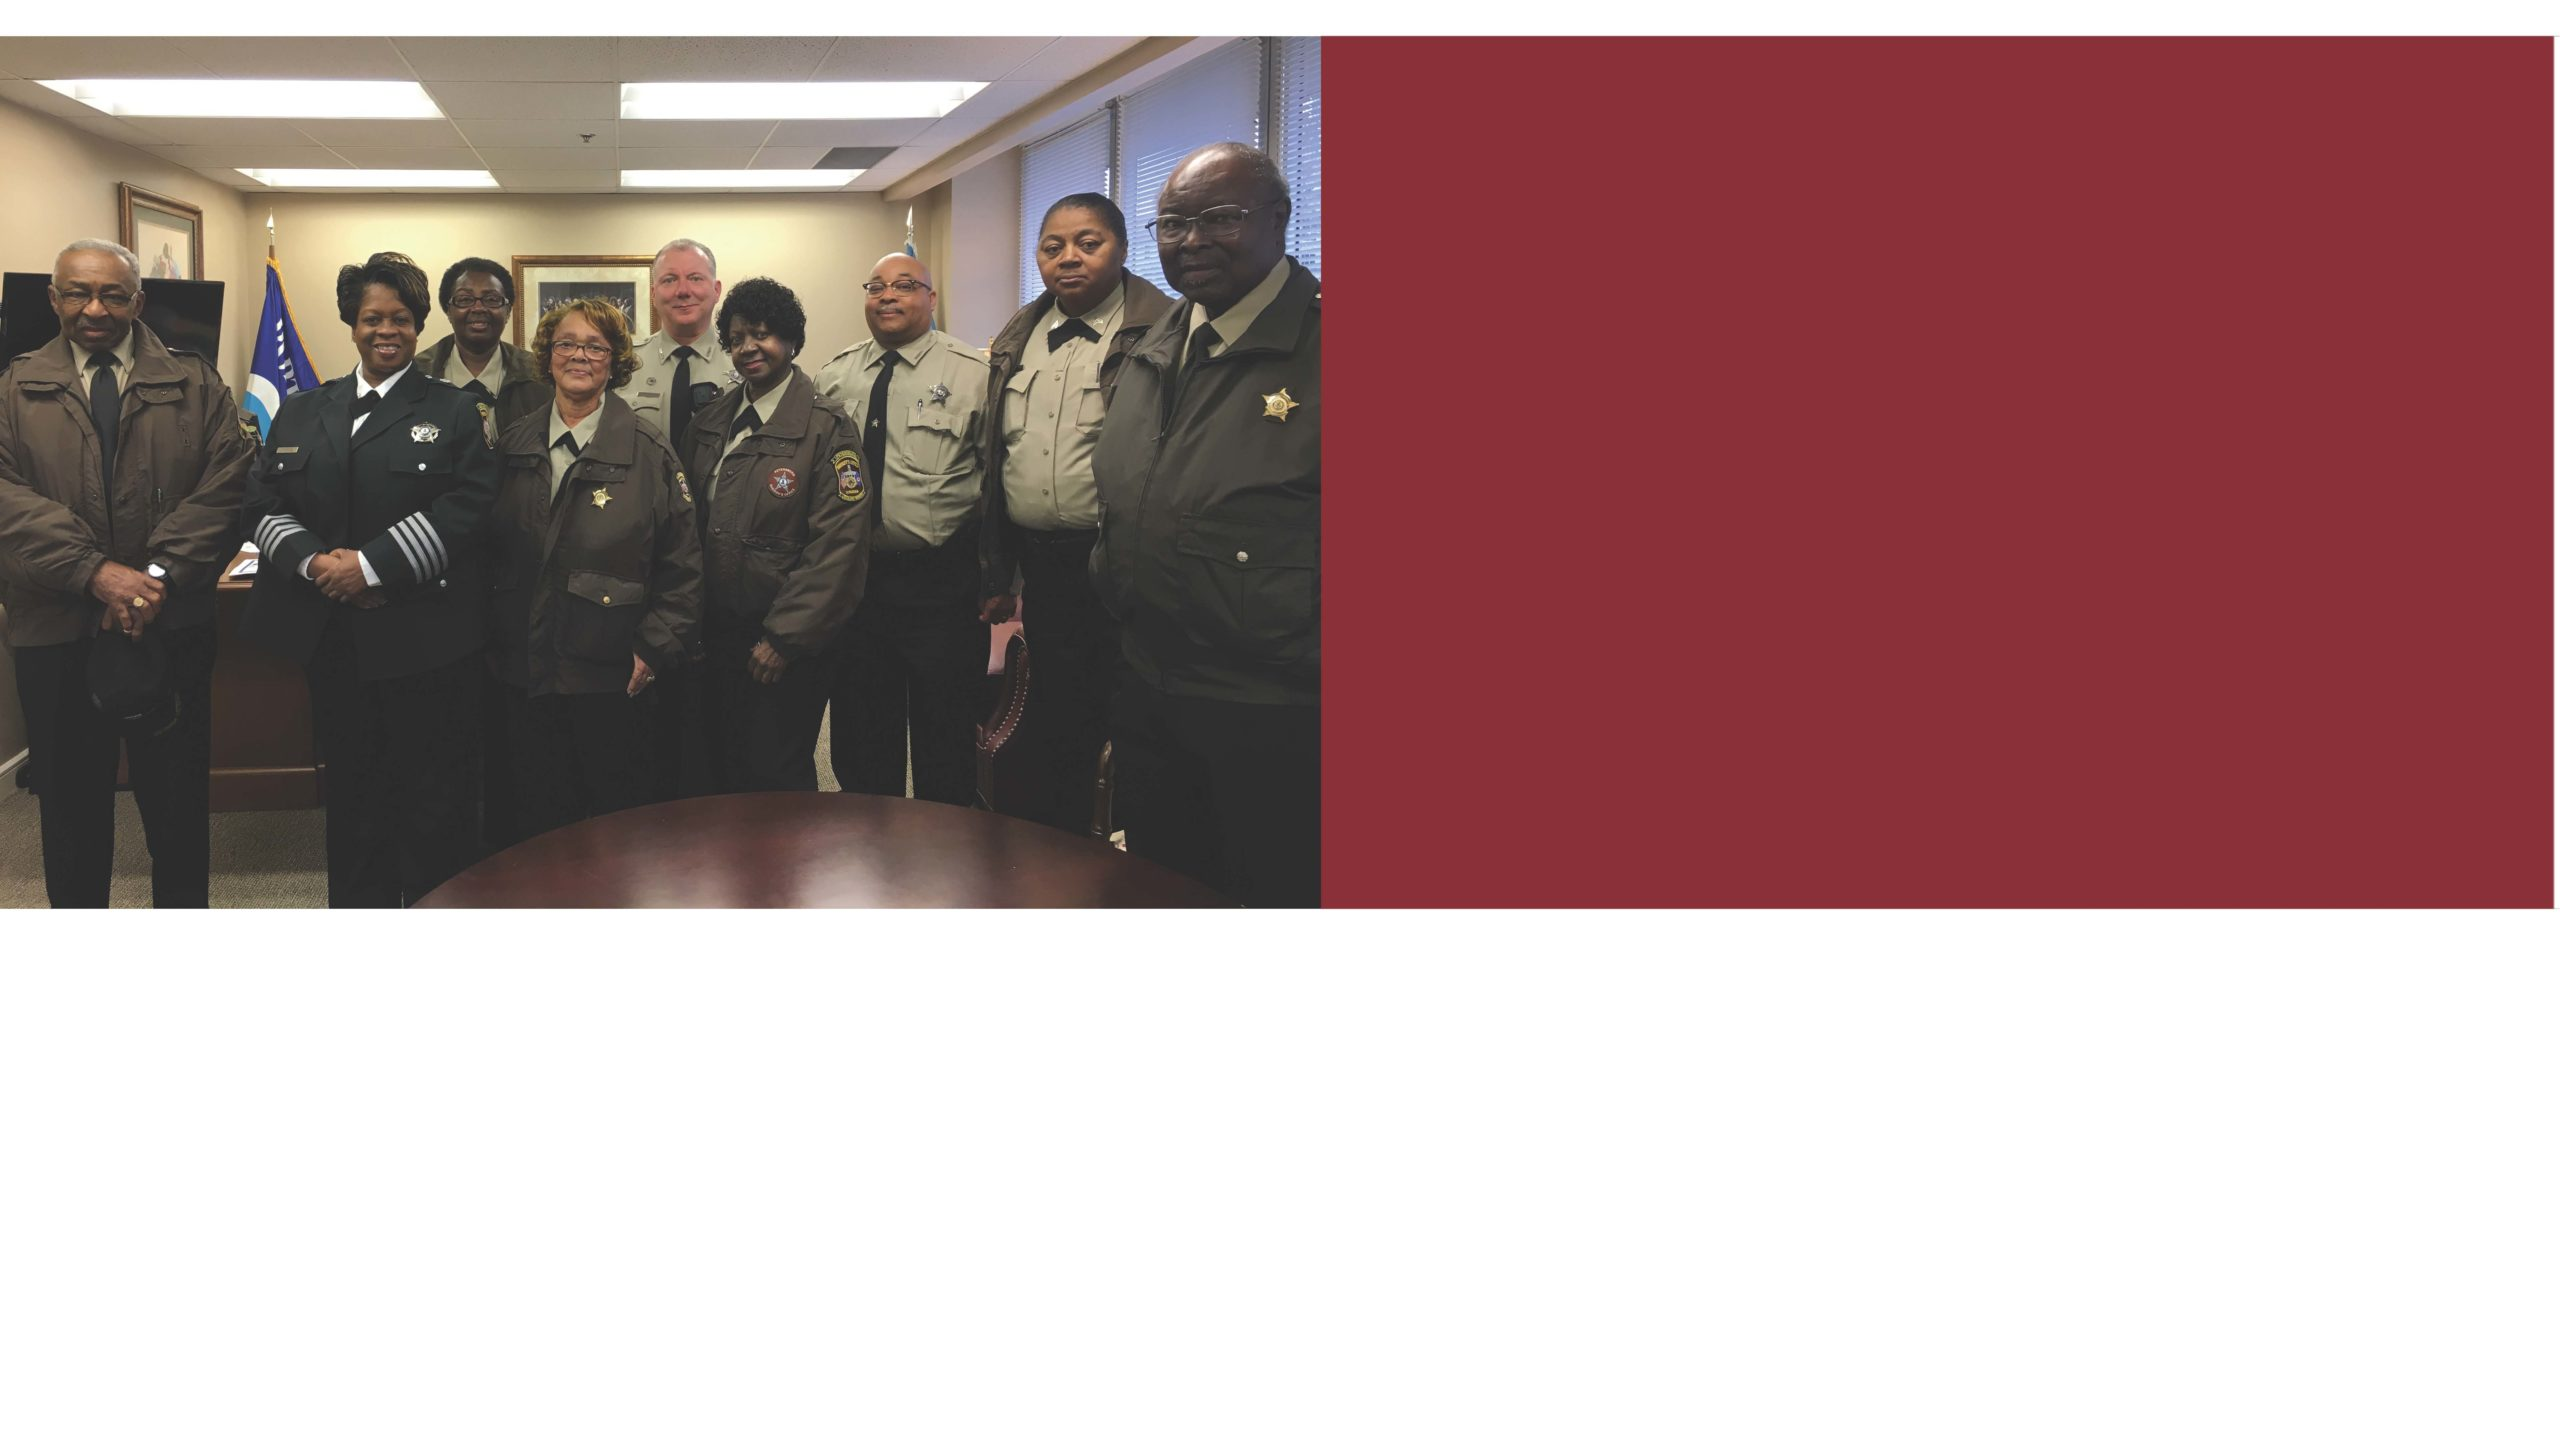 Our sheriffs work to protect the people of Virginia